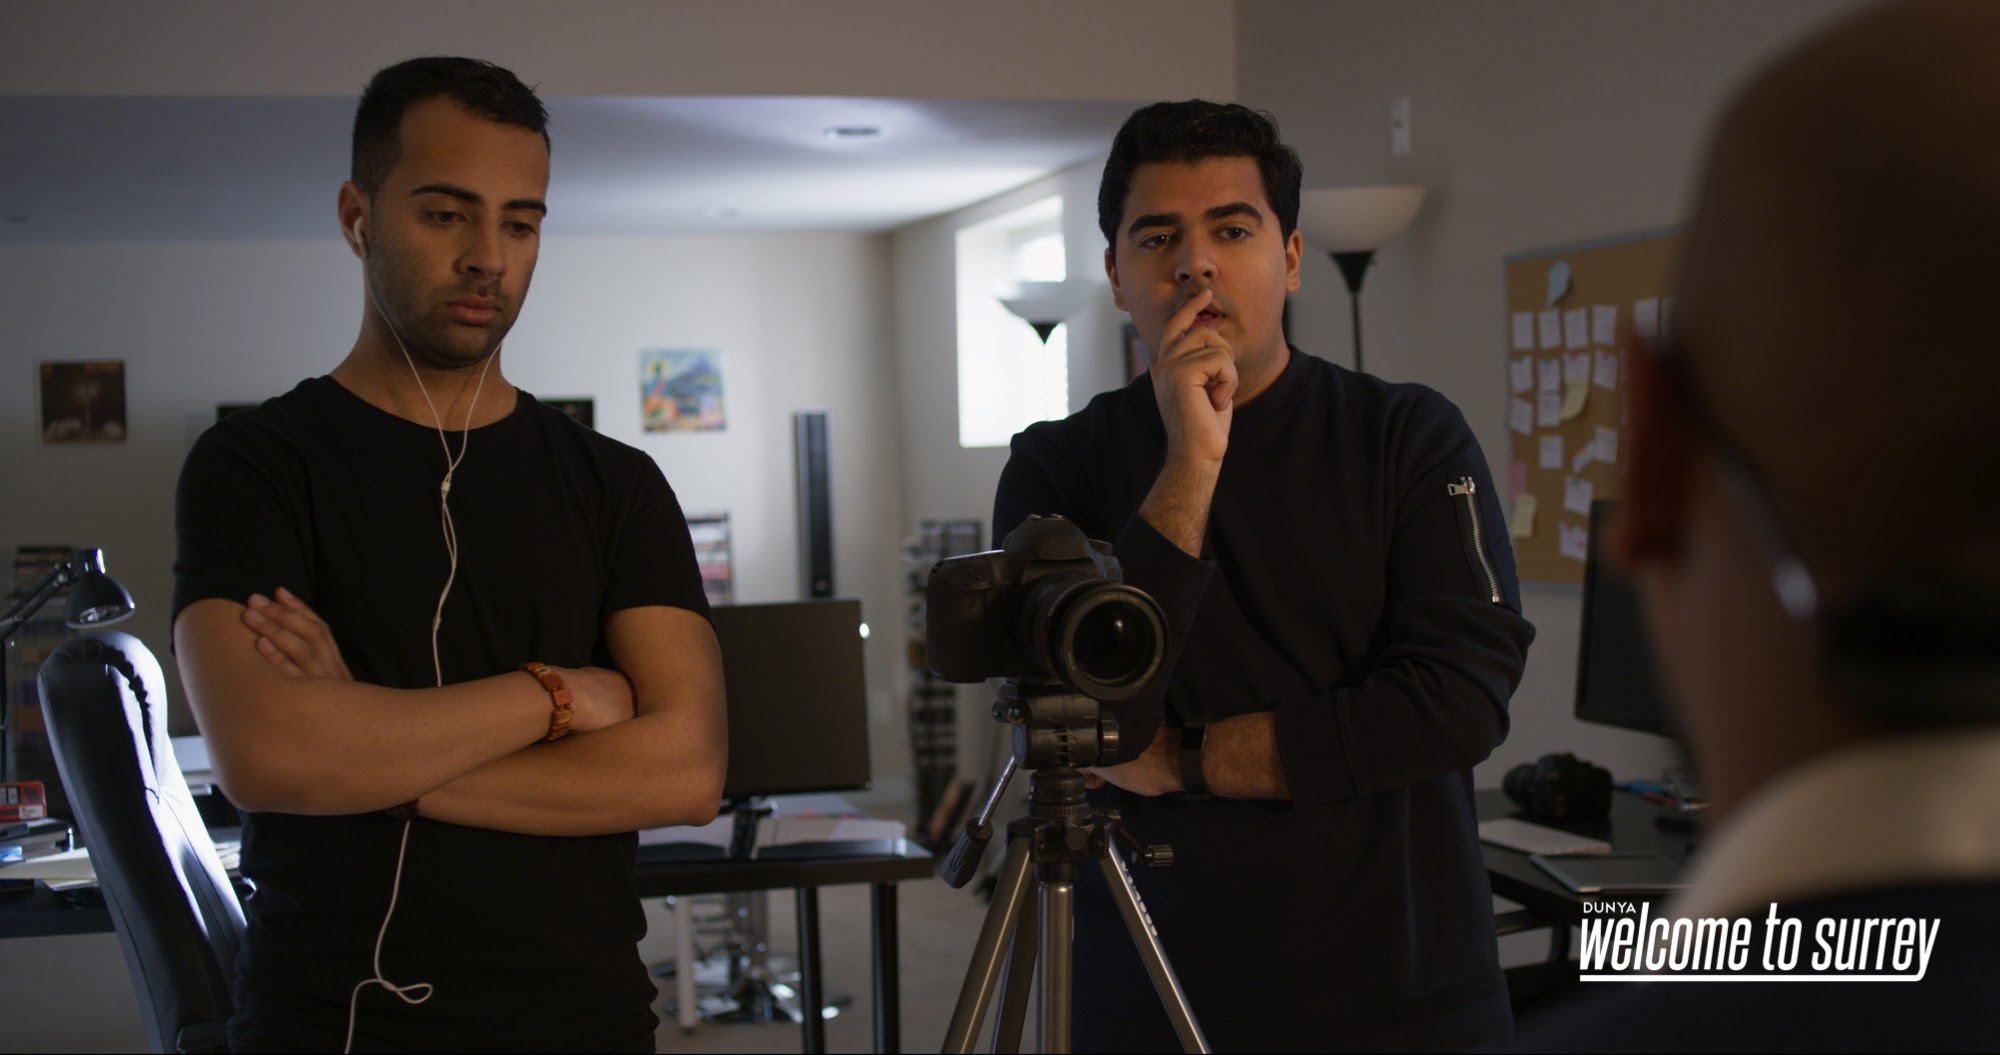 Shyam Valera and Kashif Pasta portray wedding videographers in  Welcome to Surrey .